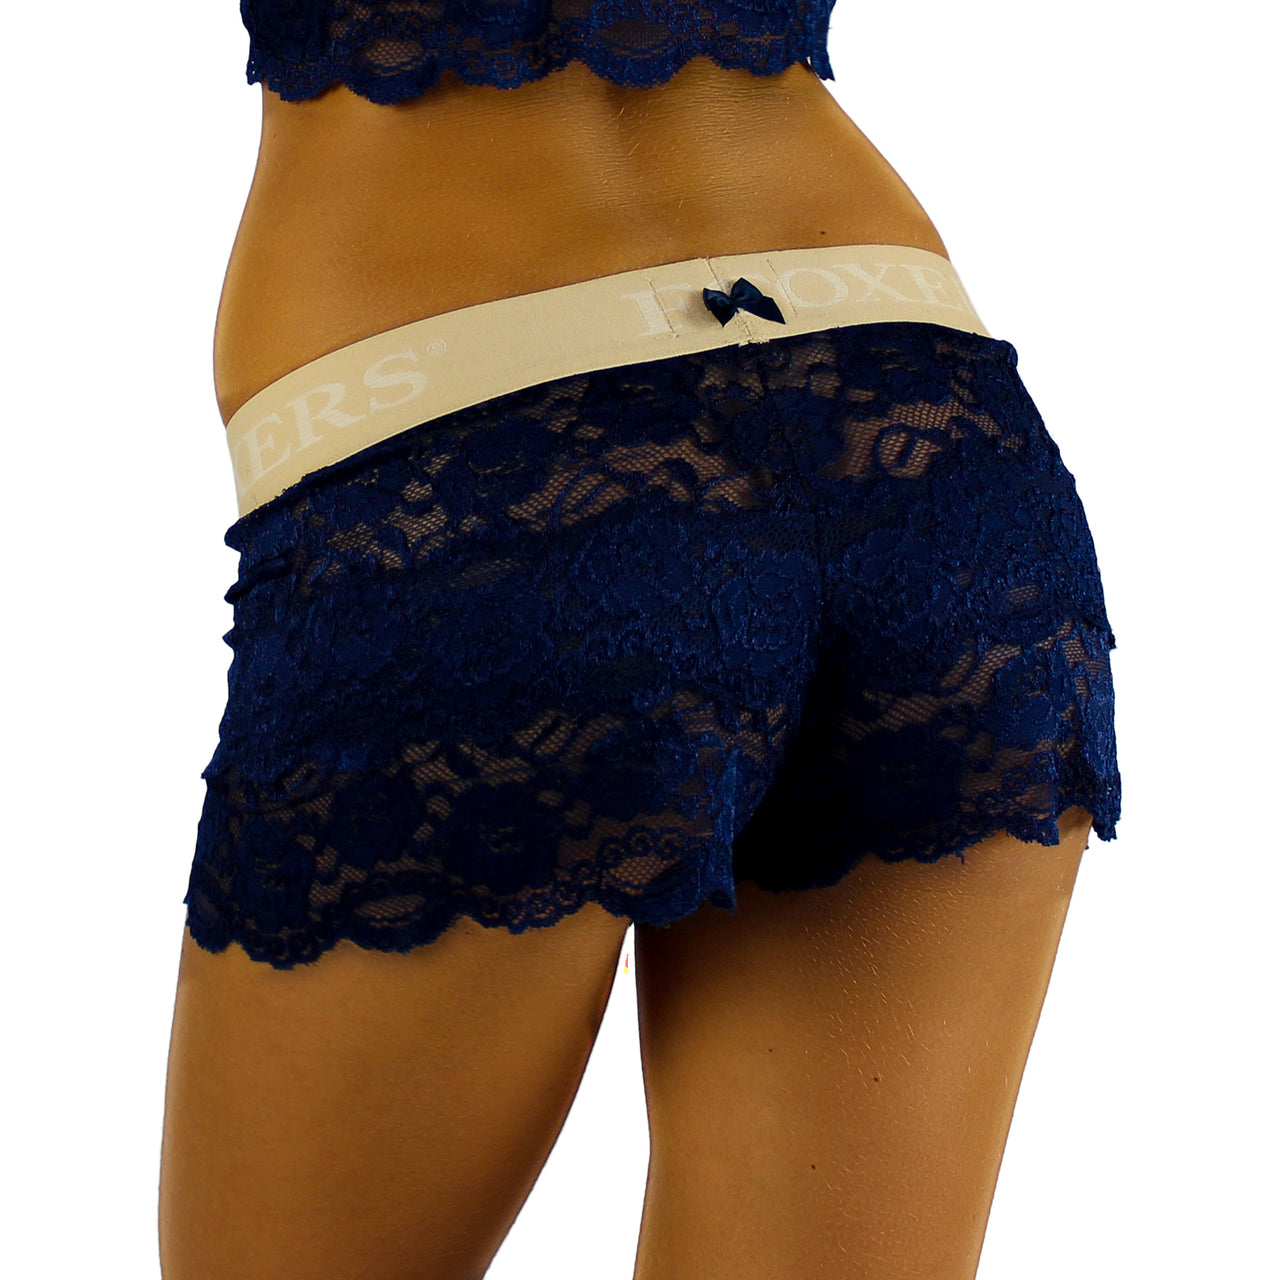 Foxers Lace Boxers with Foxers Logo Band